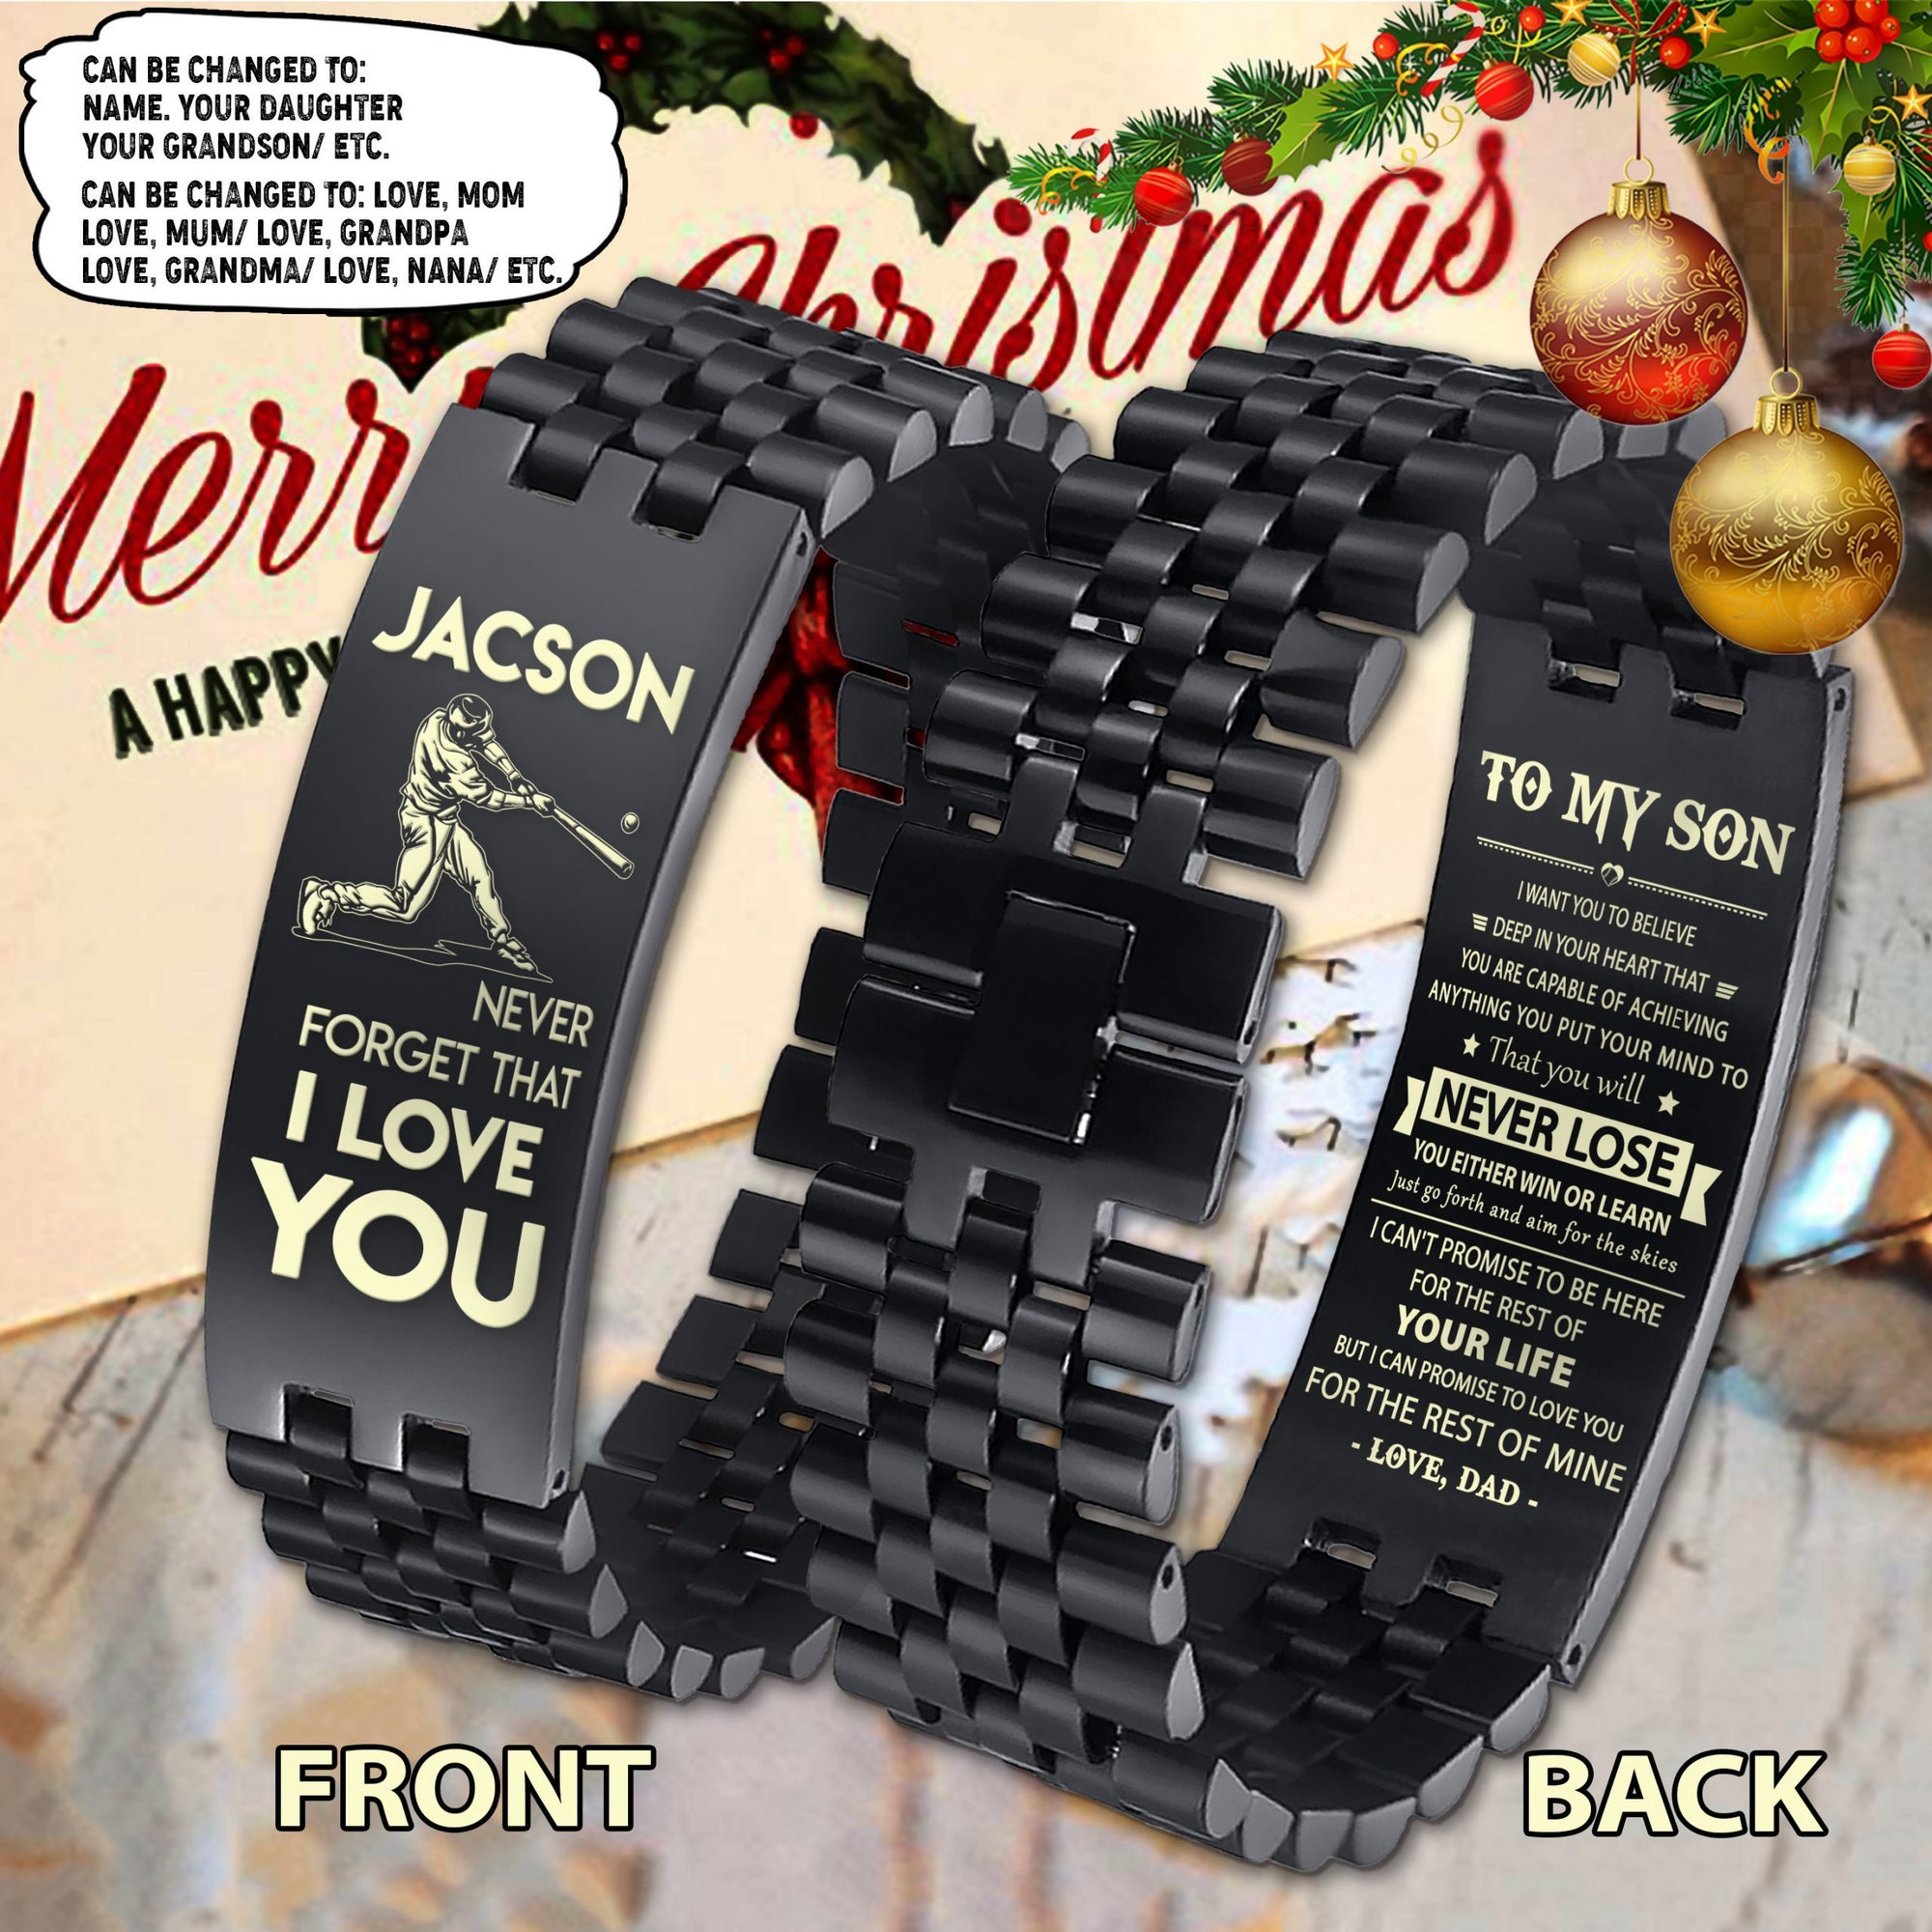 (LP284) CUSTOMIZABLE BASEBALL BRACELET 2 FACES - DAD TO SON- NEVER LOSE- FREE SHIPPING FROM 2 ITEMS